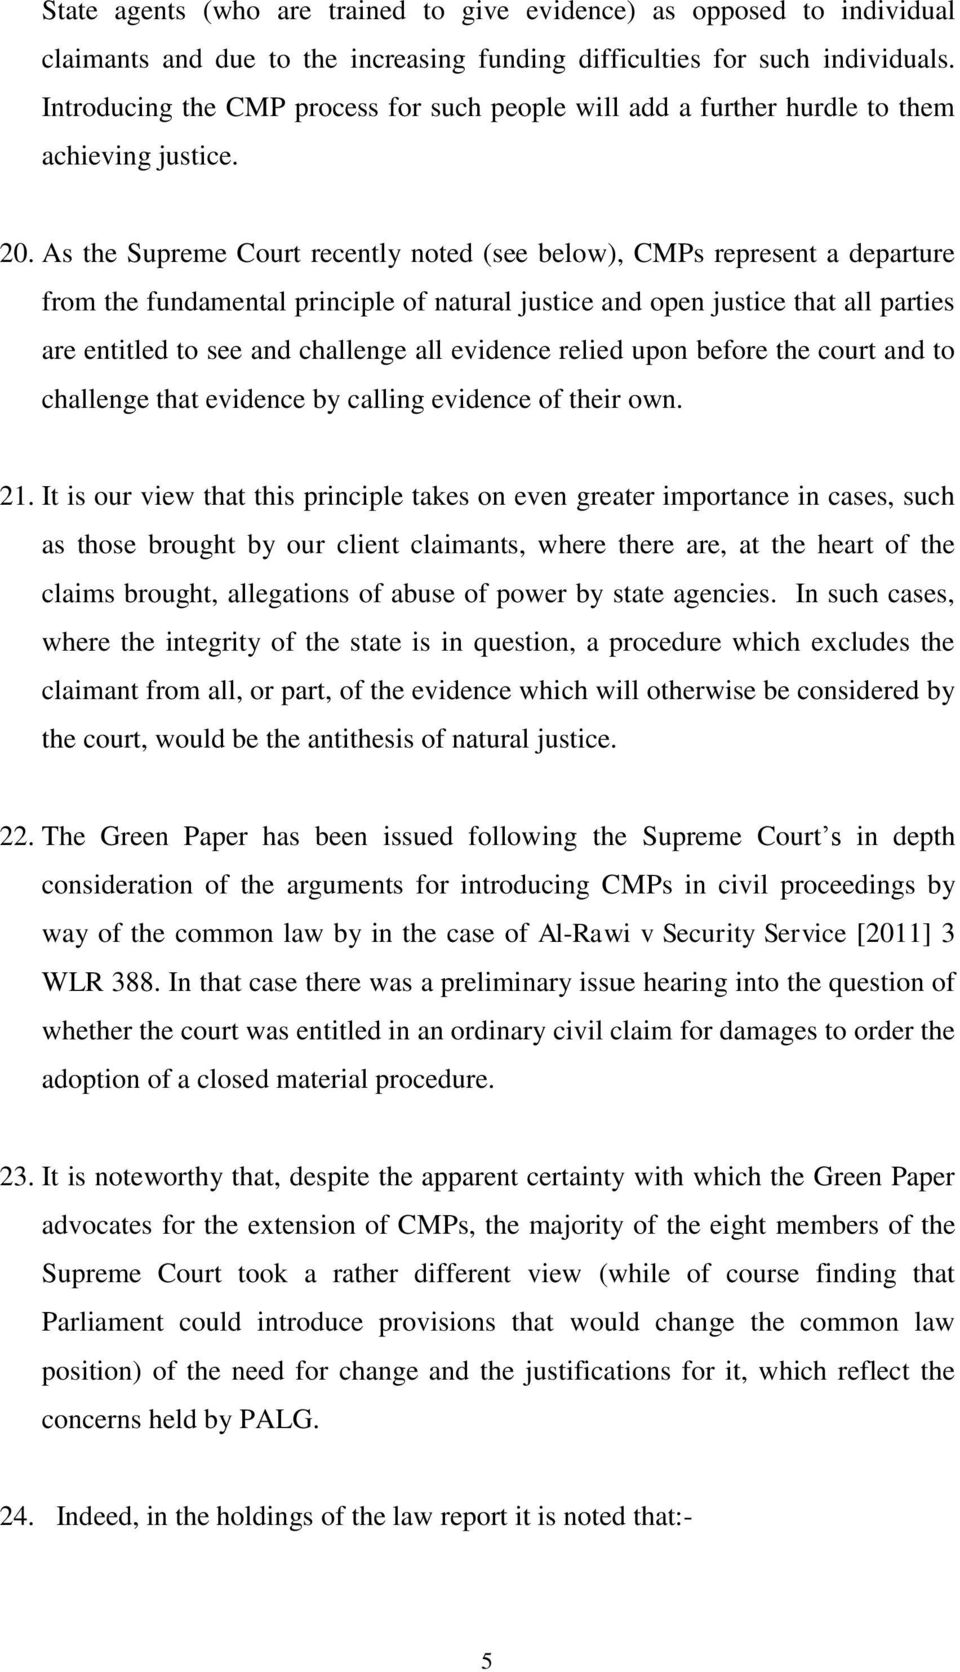 As the Supreme Court recently noted (see below), CMPs represent a departure from the fundamental principle of natural justice and open justice that all parties are entitled to see and challenge all